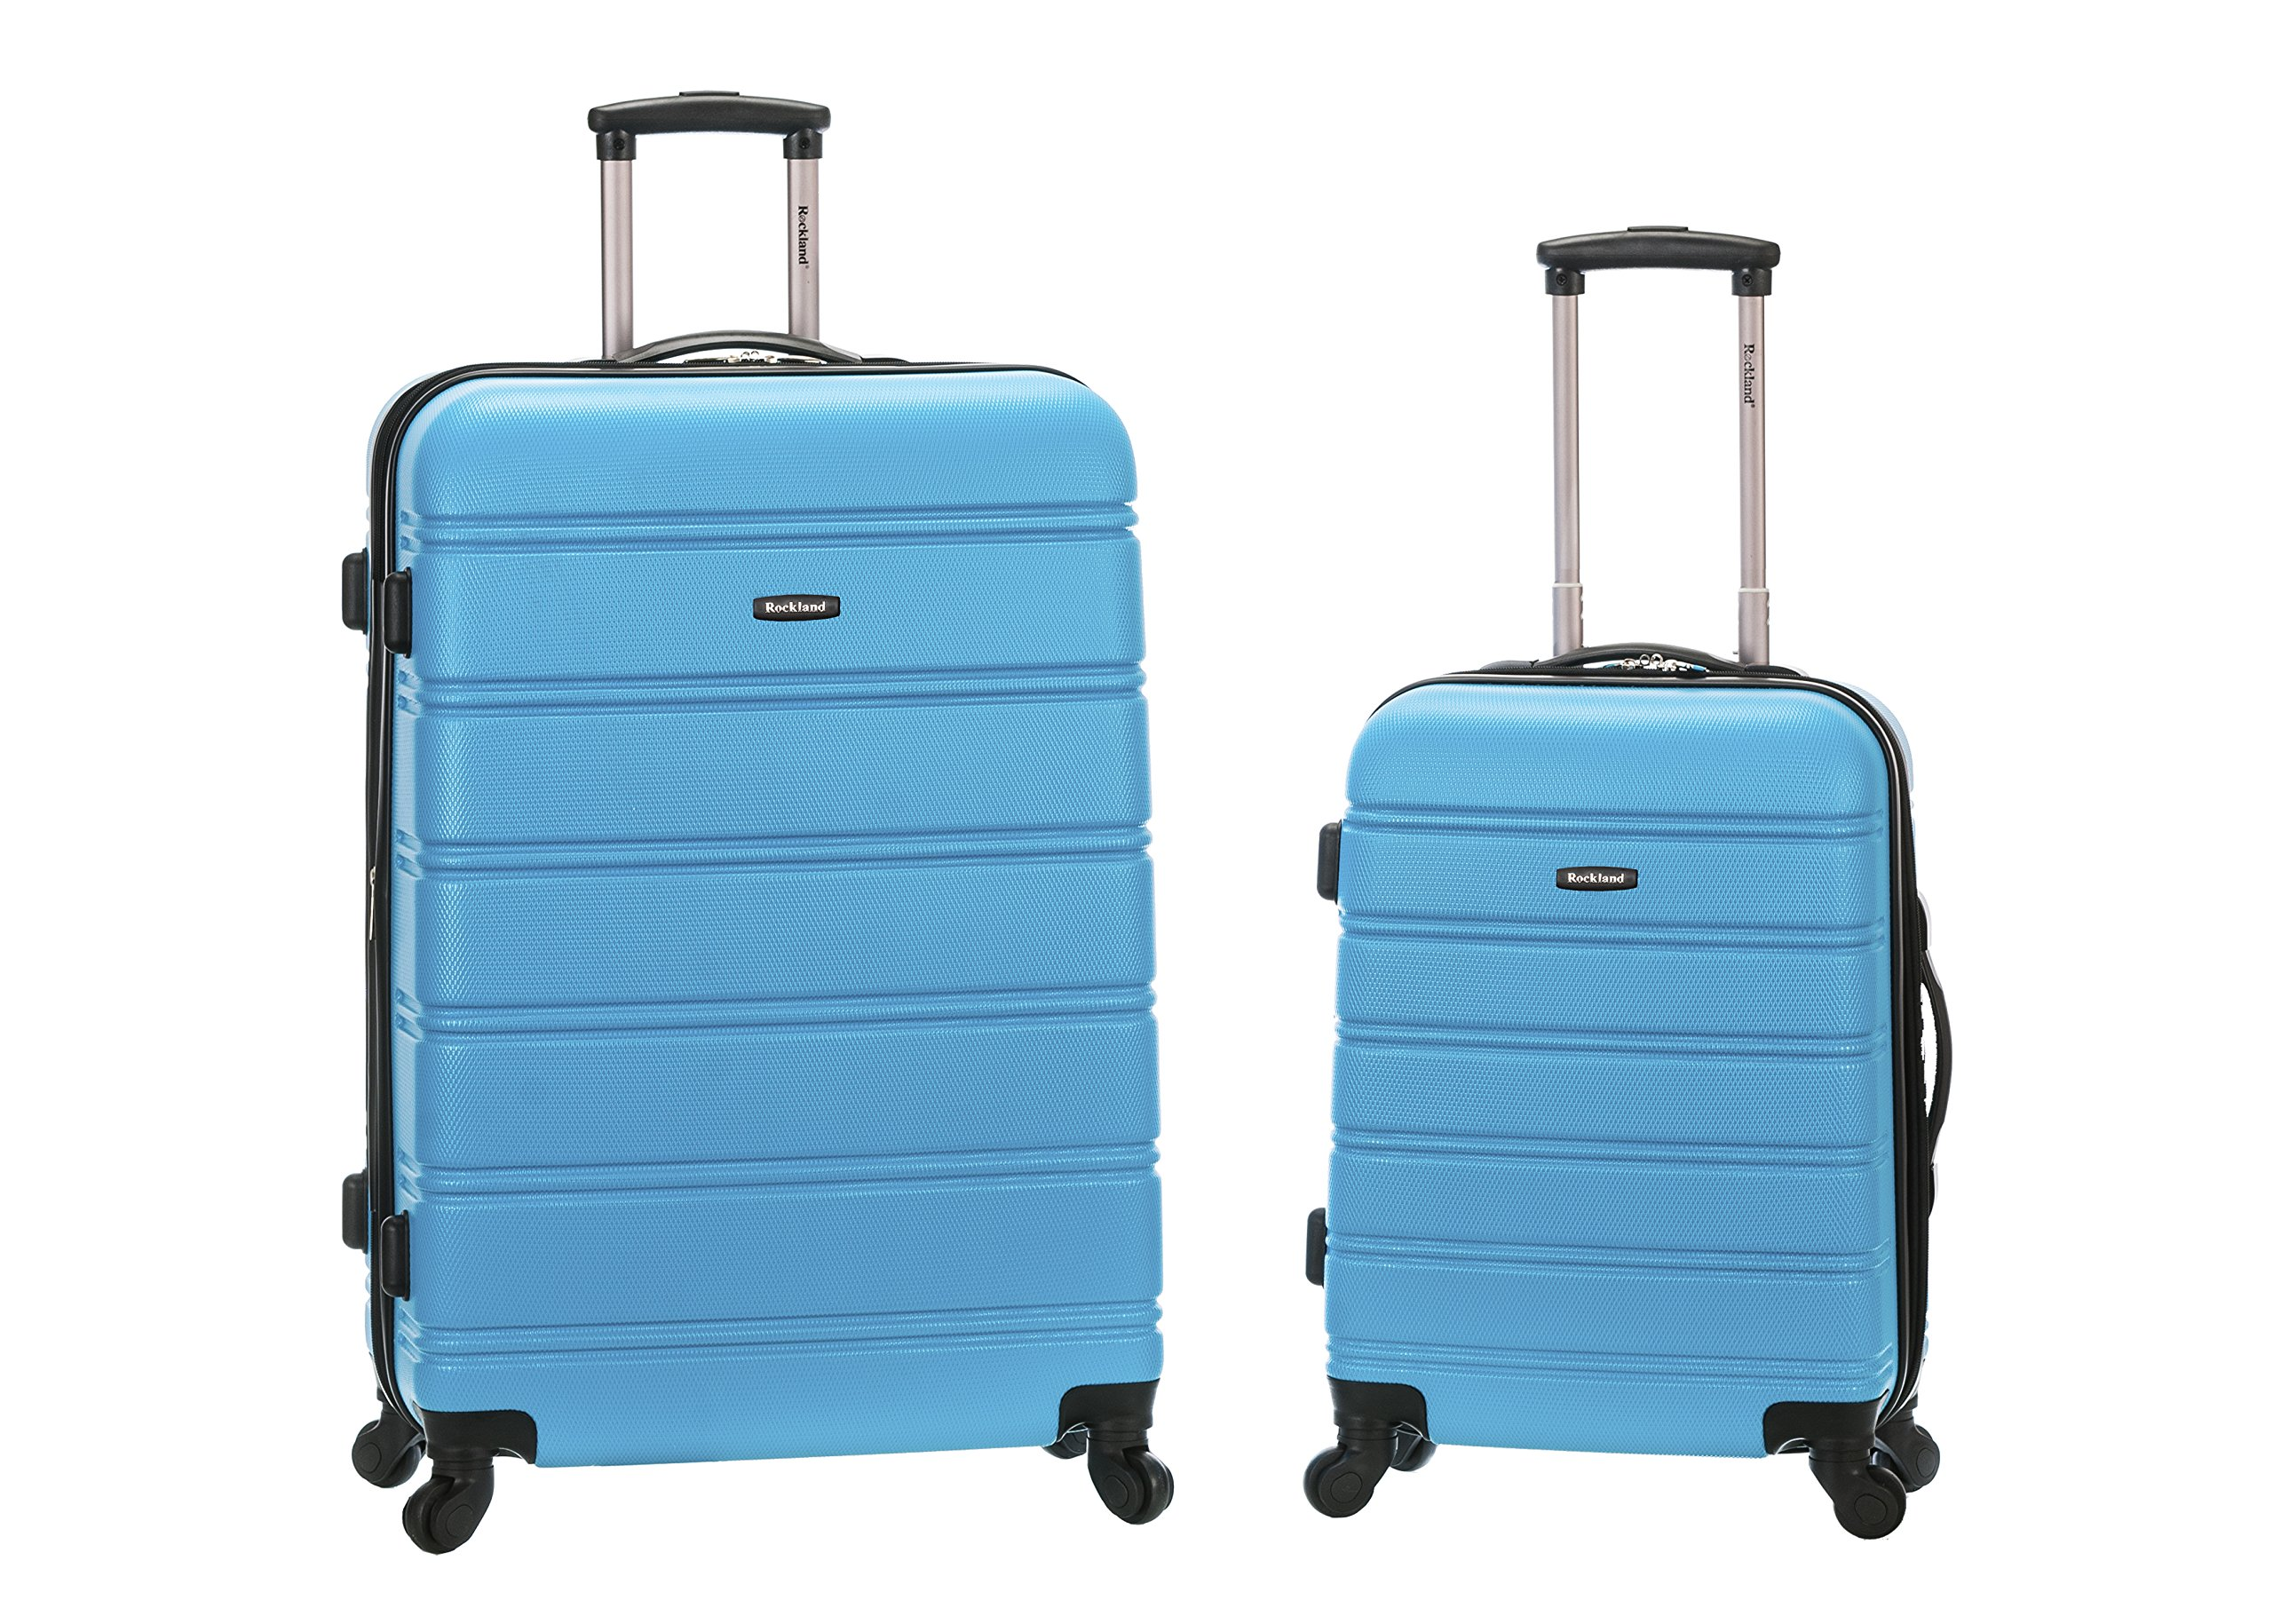 57e45d80c Unbiased Rockland Luggage Review: 20 + 28 Inch Expandable Spinner ...